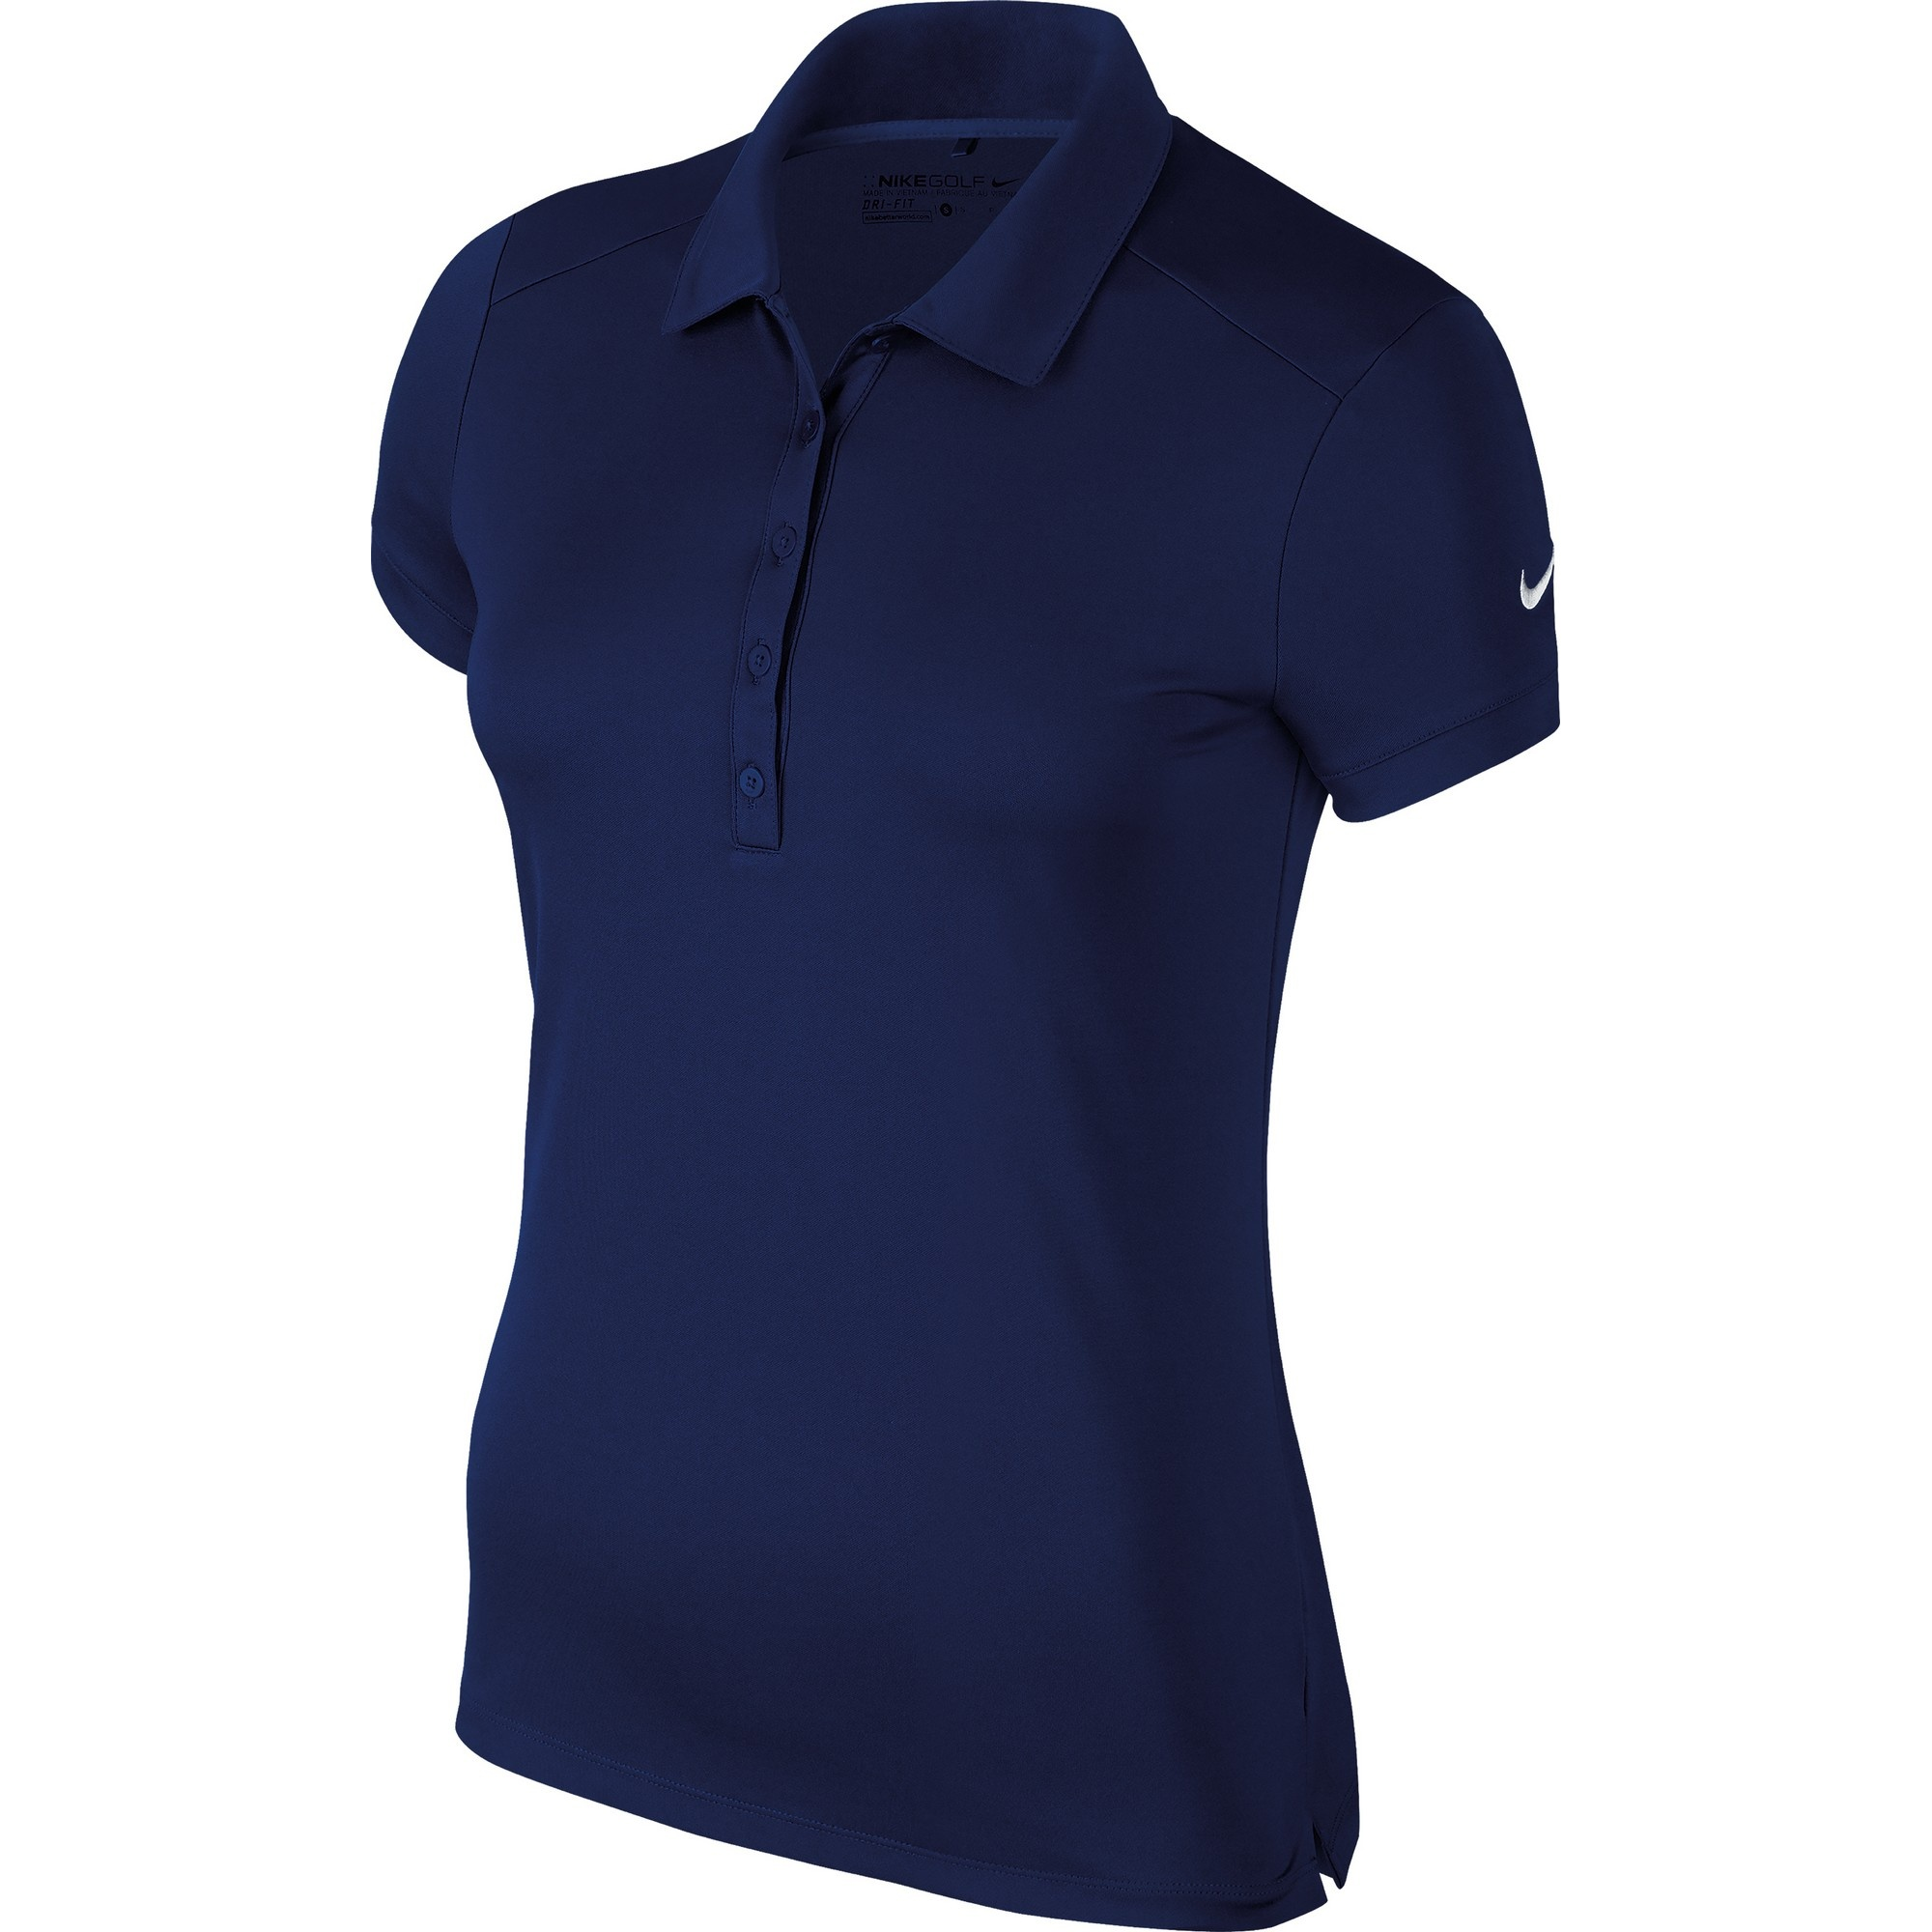 Nike Womens Ladies Victory Short Sleeve Solid Polo Shirt